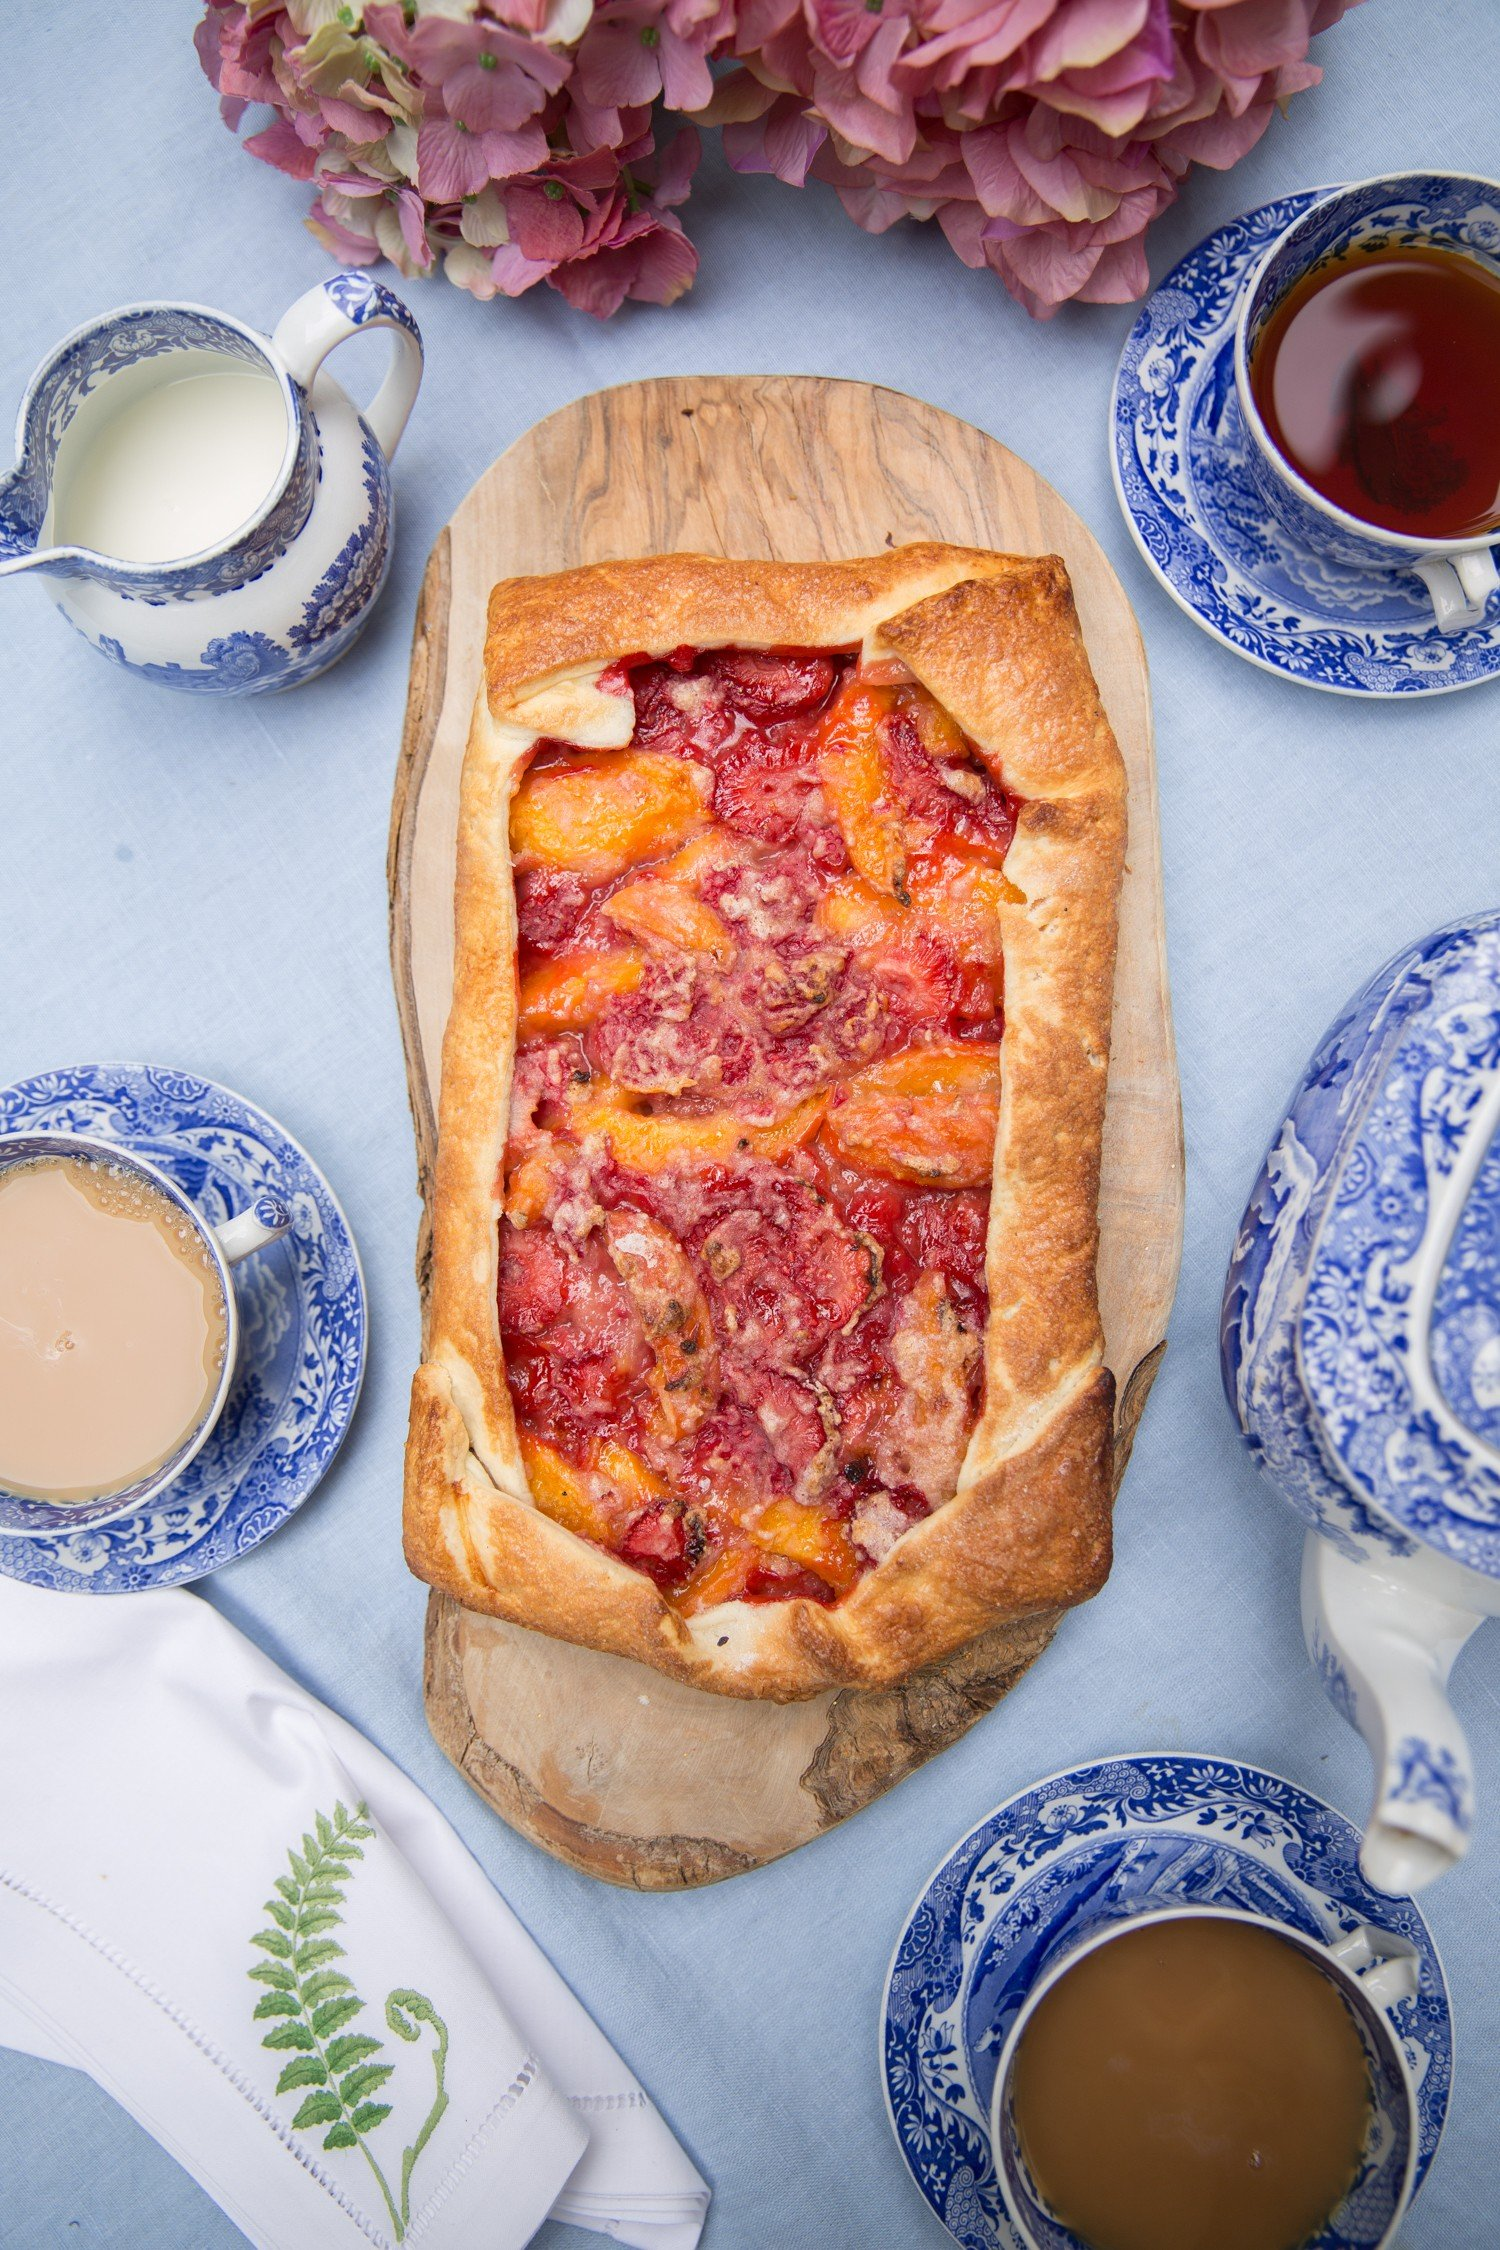 Lazy Summer Tart - Perfect for all those summer fruits!